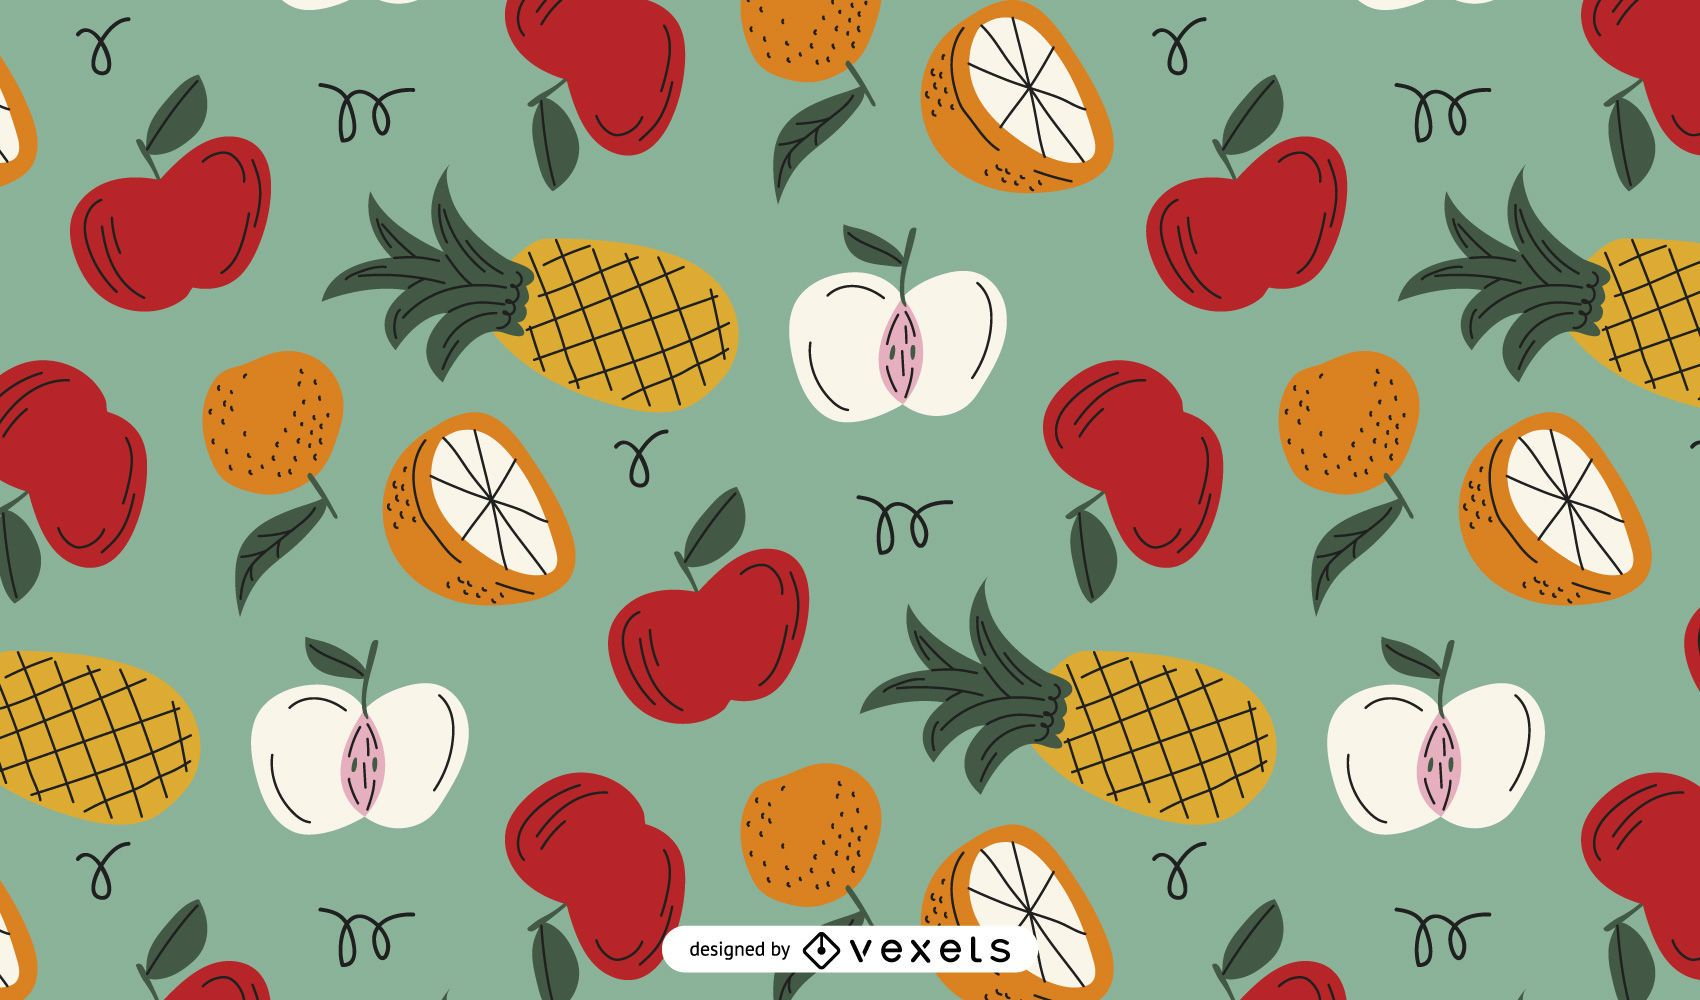 Fruits colorful pattern design